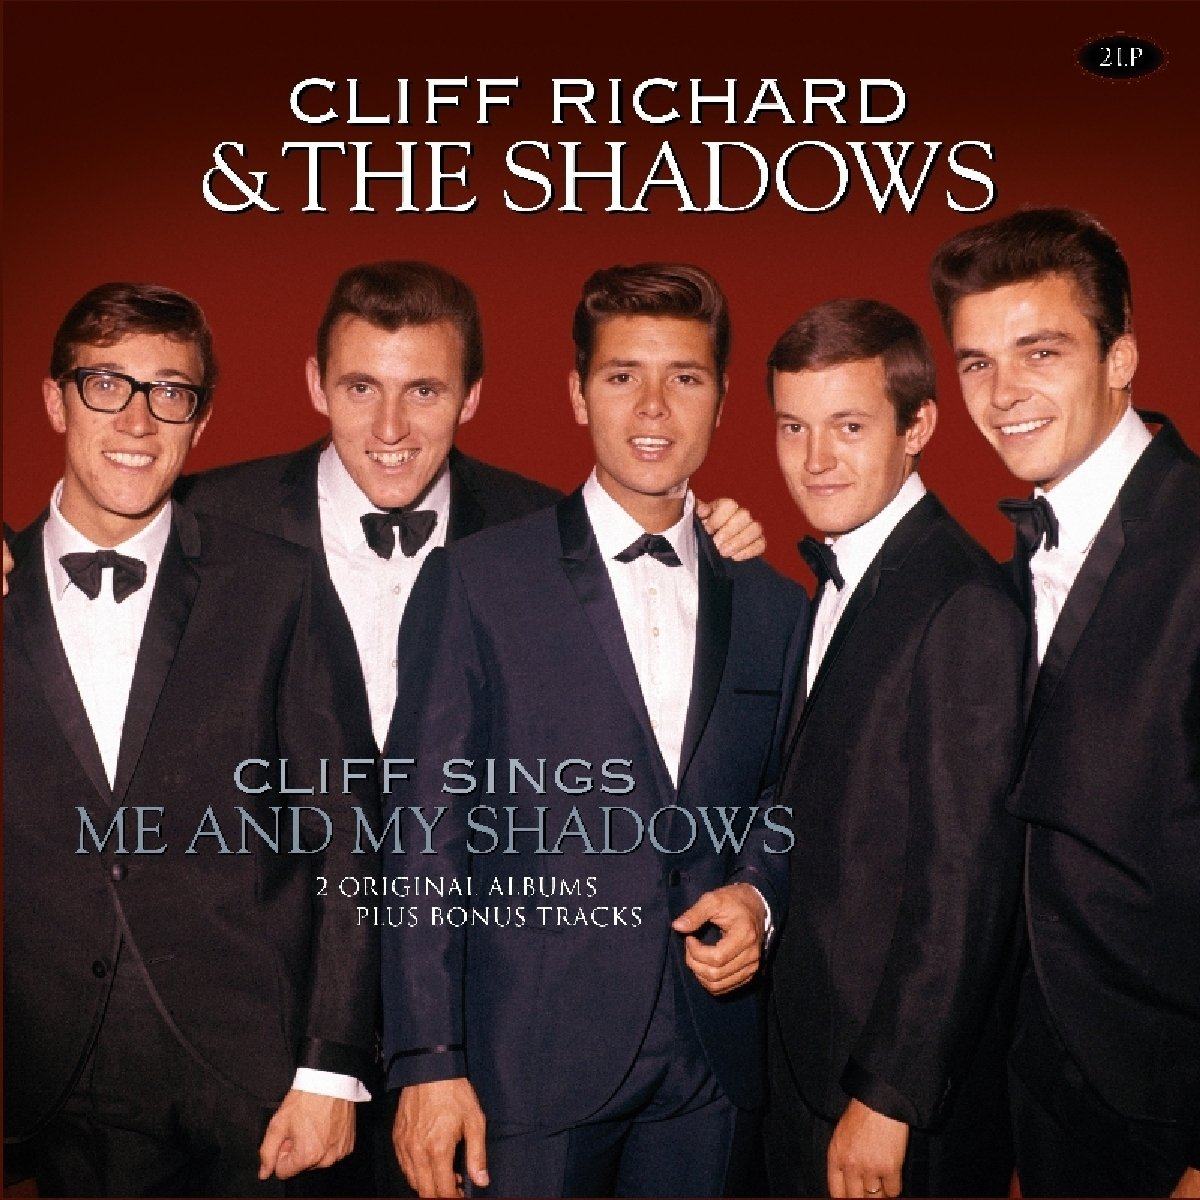 Vinilo : CLIFF & THE SHADOWS RICHARD - Cliff Sings / Me & My Shadows (Holland - Import, 2PC)